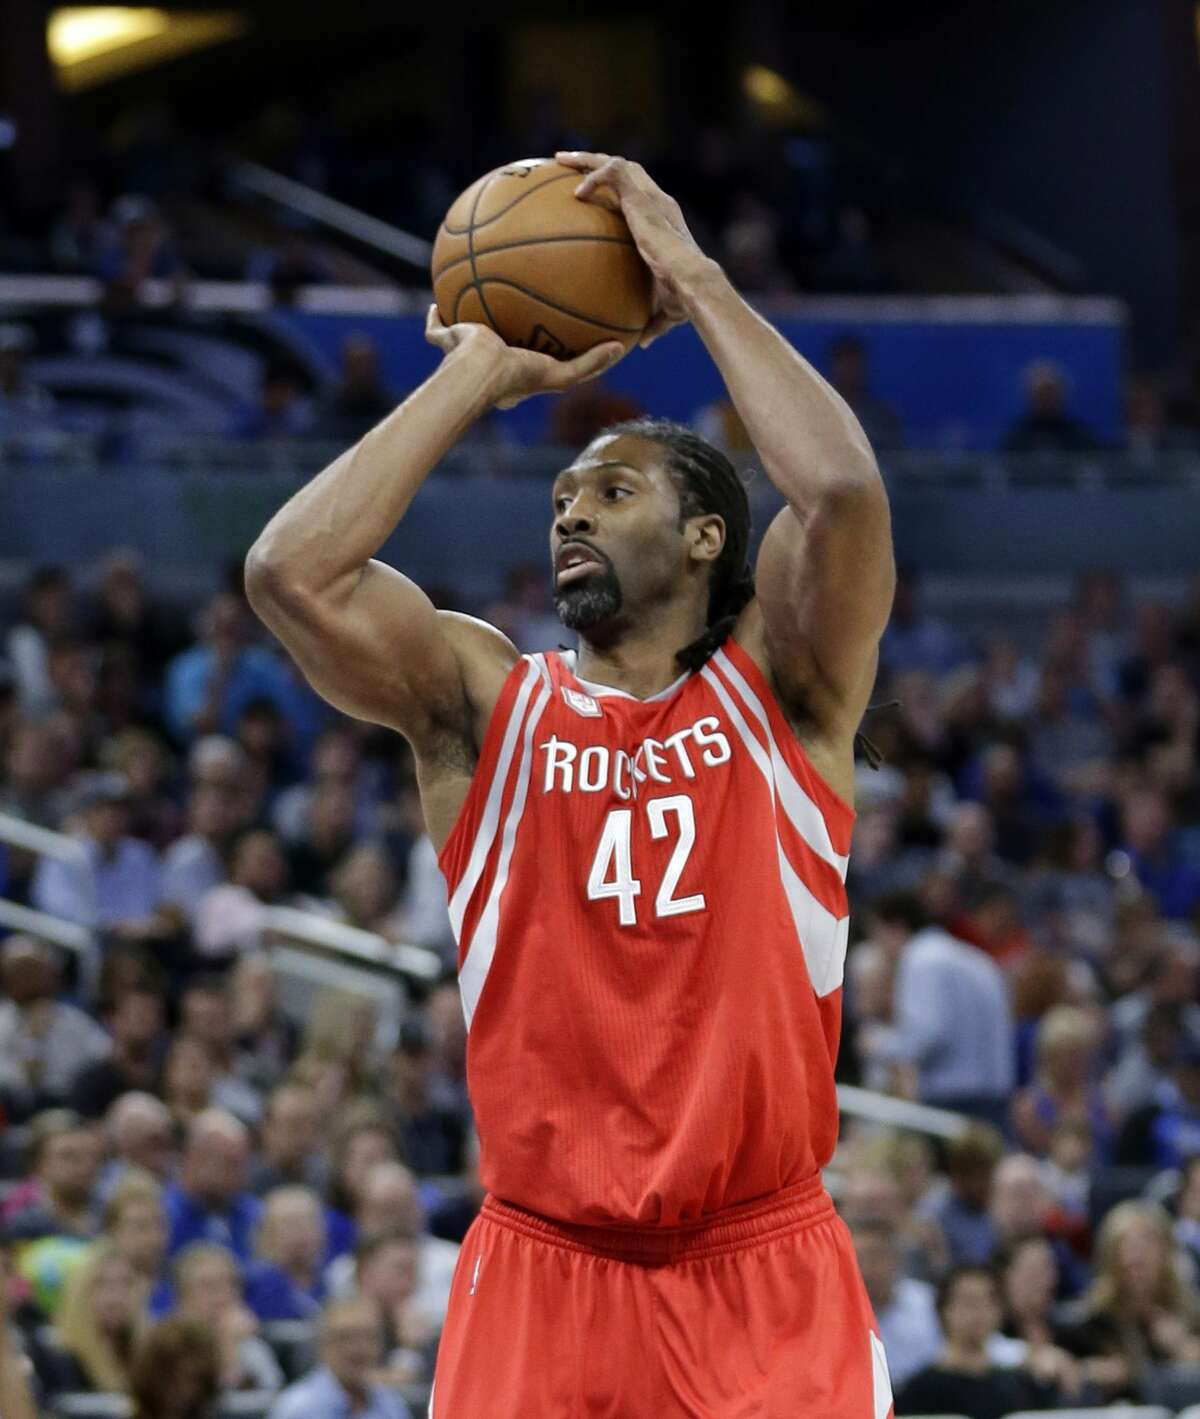 Houston Rockets' Nene takes a shot against the Orlando Magic during the first half of an NBA basketball game, Friday, Jan. 6, 2017, in Orlando, Fla. (AP Photo/John Raoux)